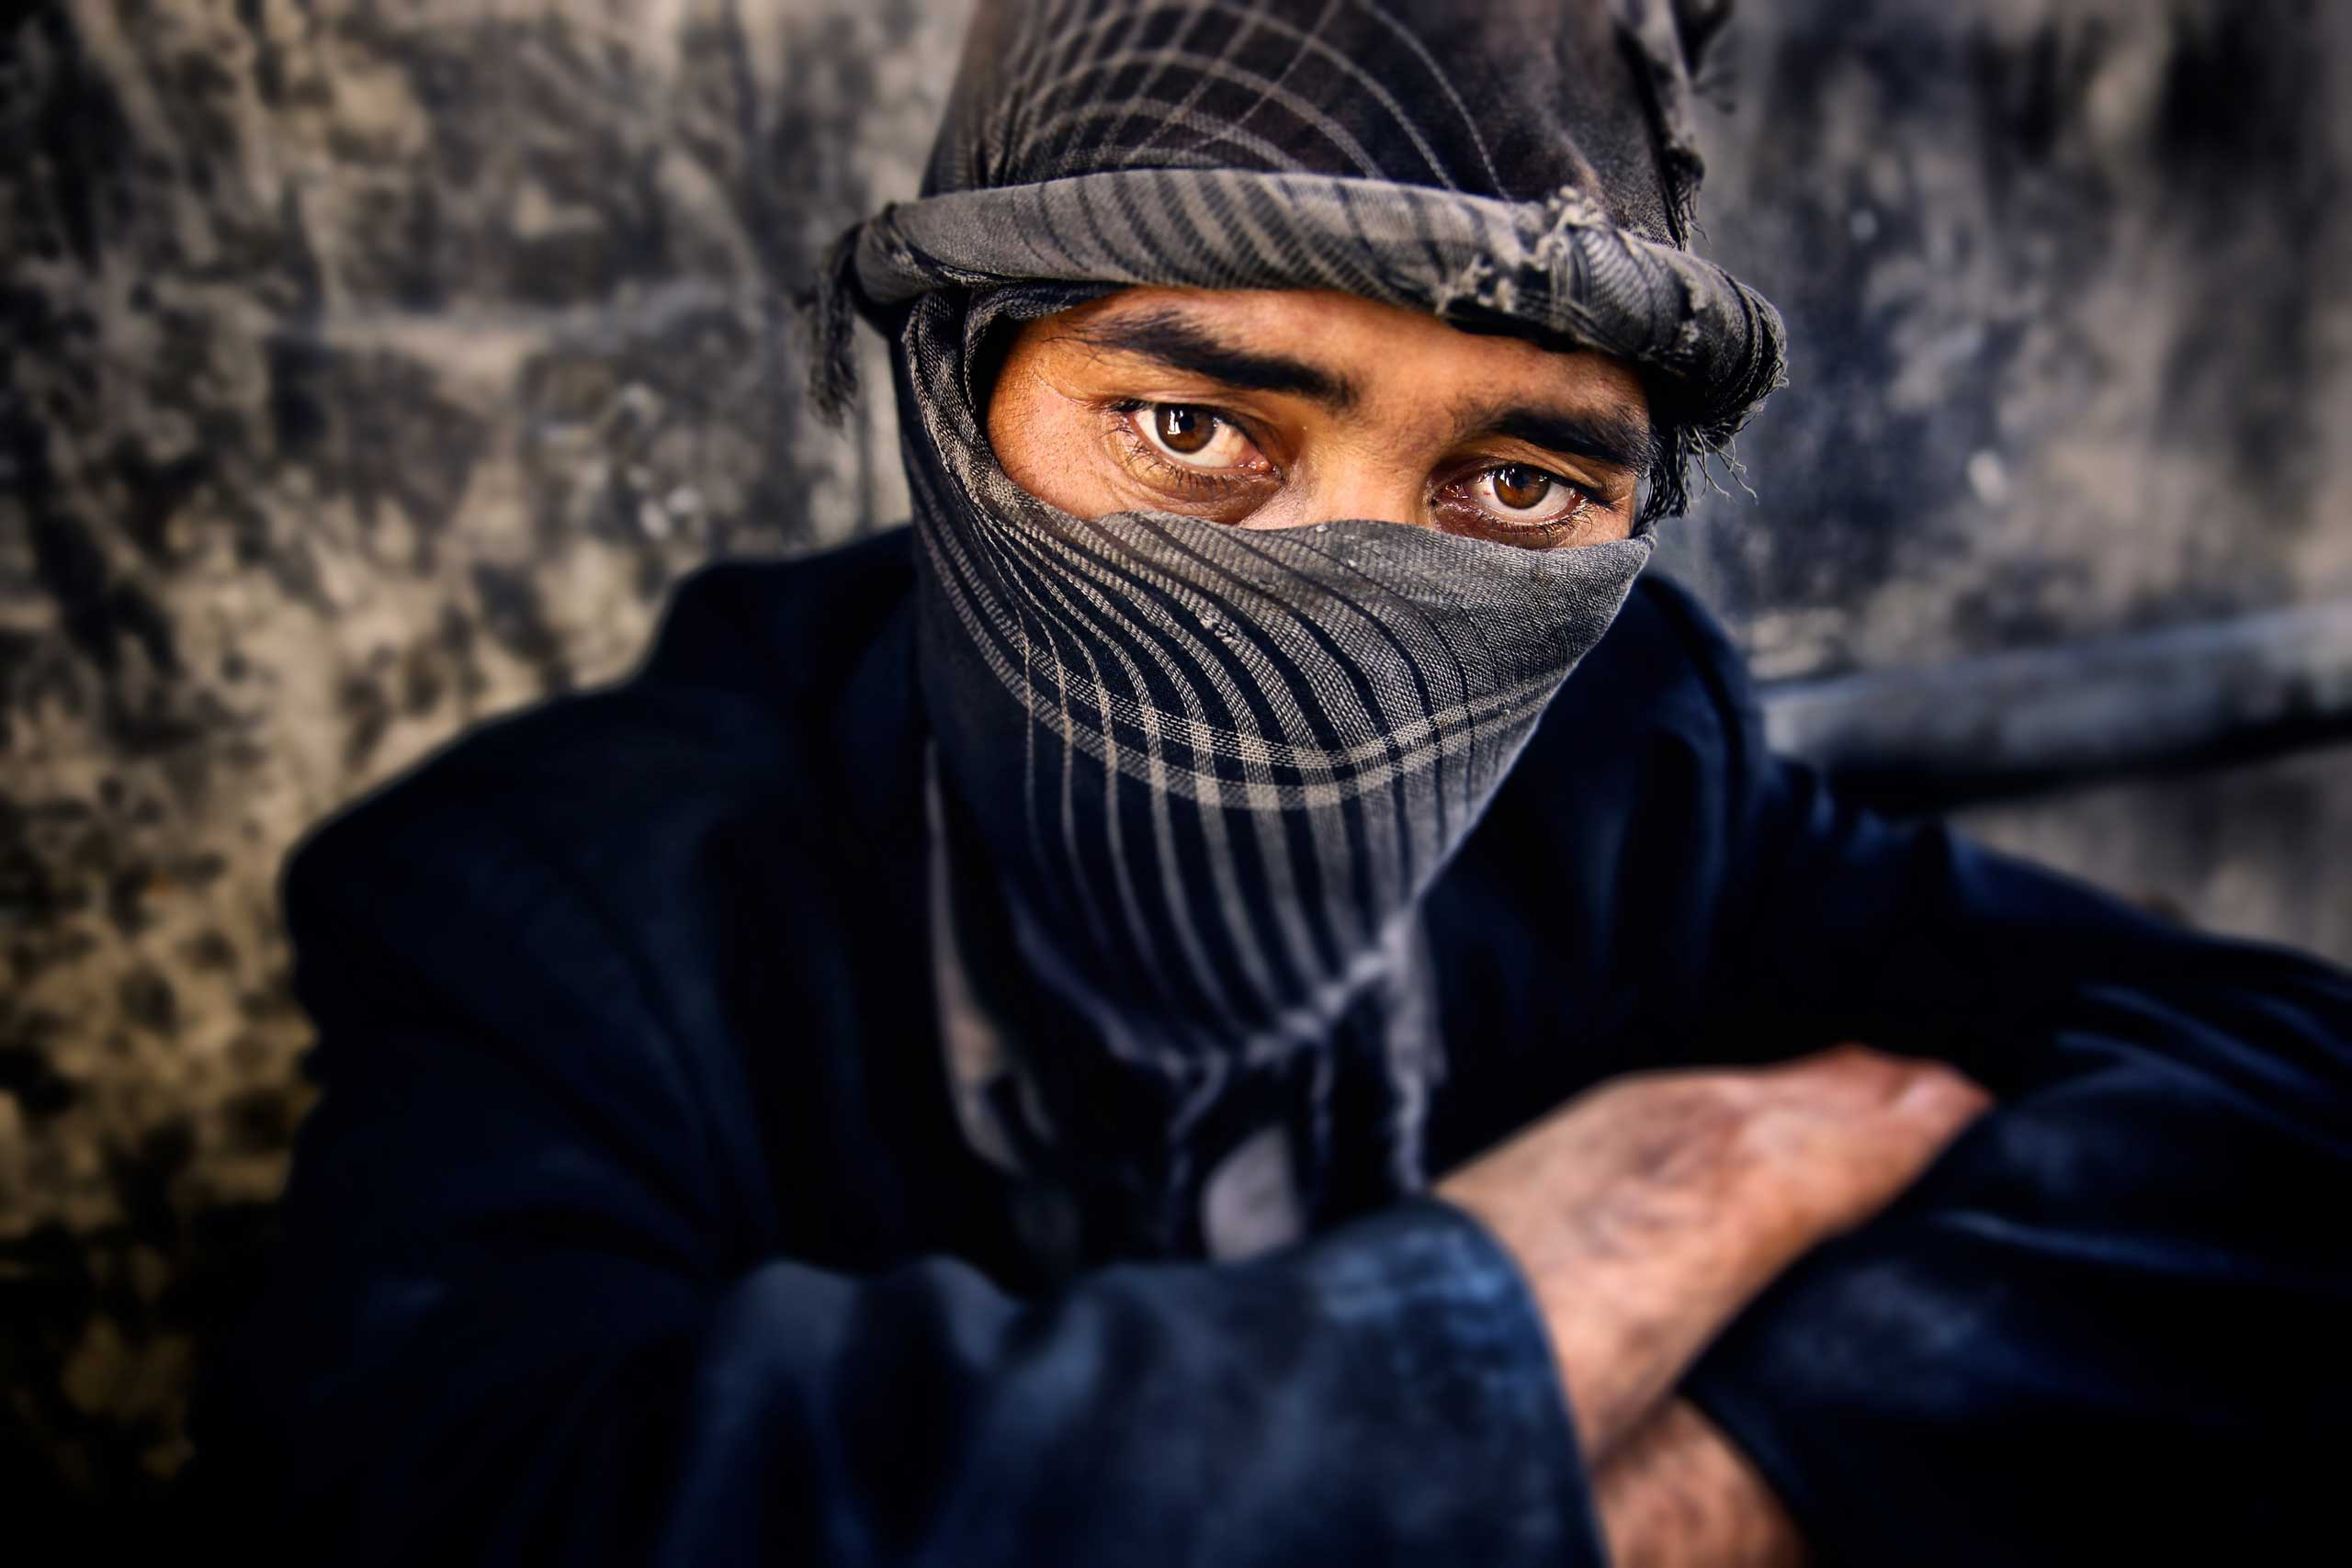 Abdullah, 36, has been a heroin and opium addict for 19 years. Though he has a wife and five children in Jalalabad he has failed to maintain his recovery after five attempts at rehabilitation seen on July, 24, 2014.